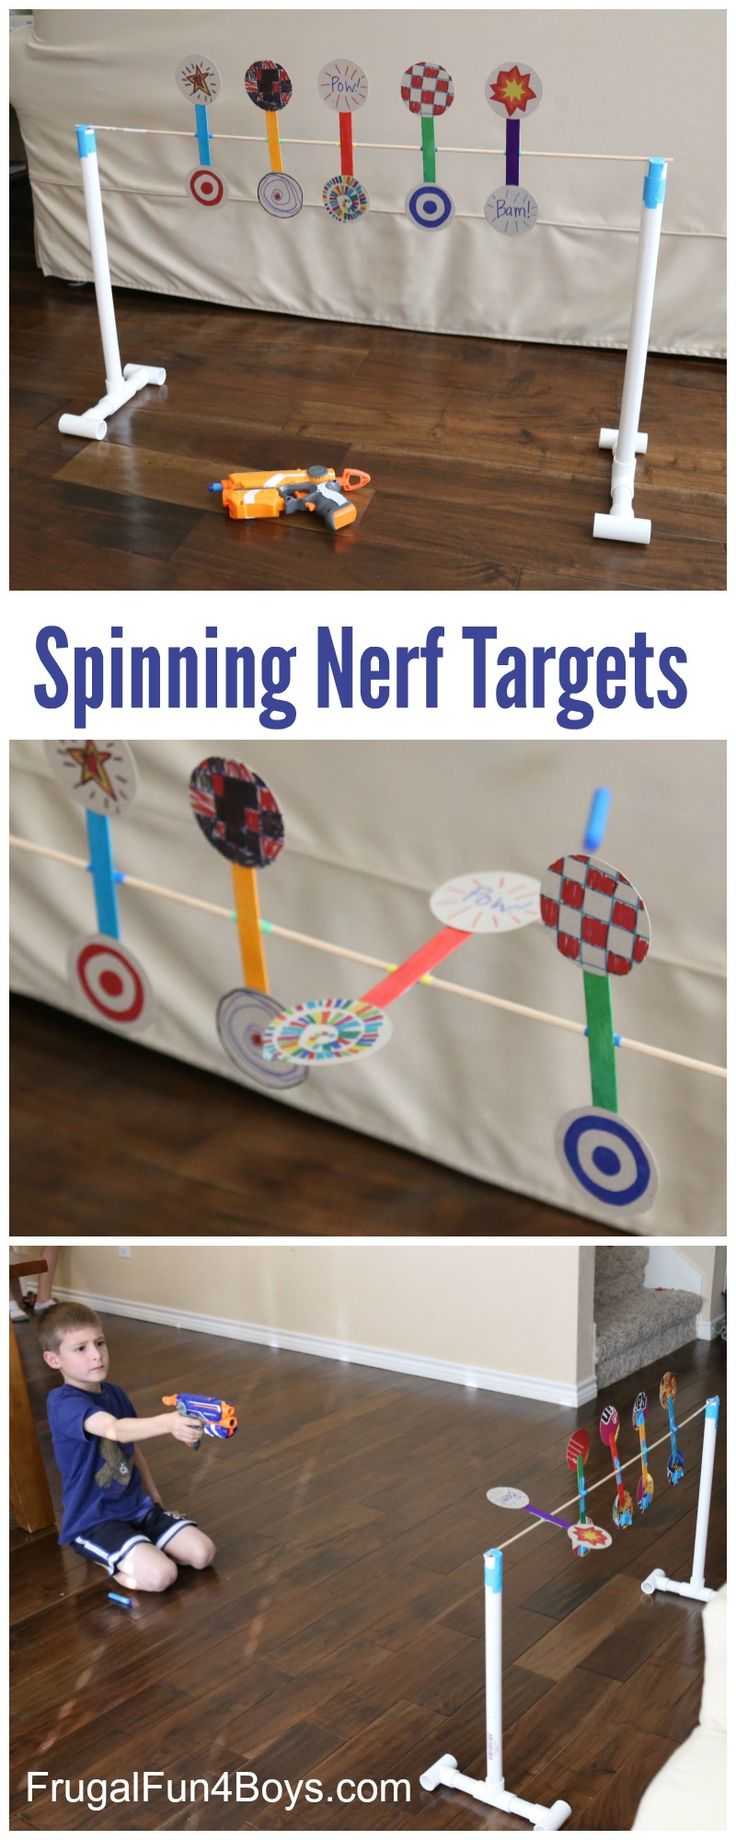 Build a Nerf target game with spinning targets!  This simple game is fun to make and does not require a lot of special materials.   We used a dowel rod, cardboard from a cereal box, and a simple PVC pipe frame to build this target. The targets rotate on the dowel so that they spin...Read More »